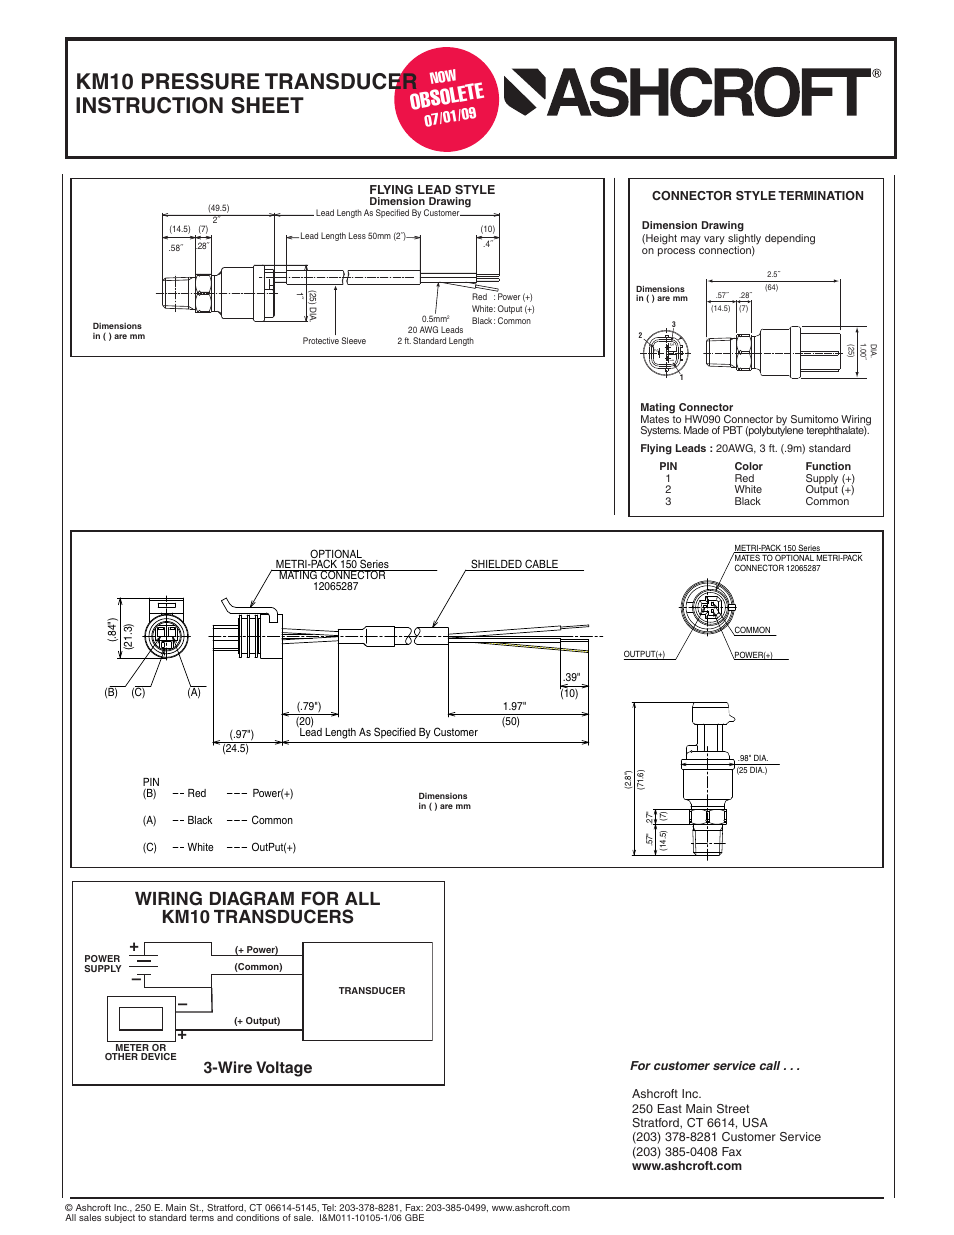 Garmin Transducer Wiring Diagram Diagrams Power Best Image 2018 4 Pin Gemeco